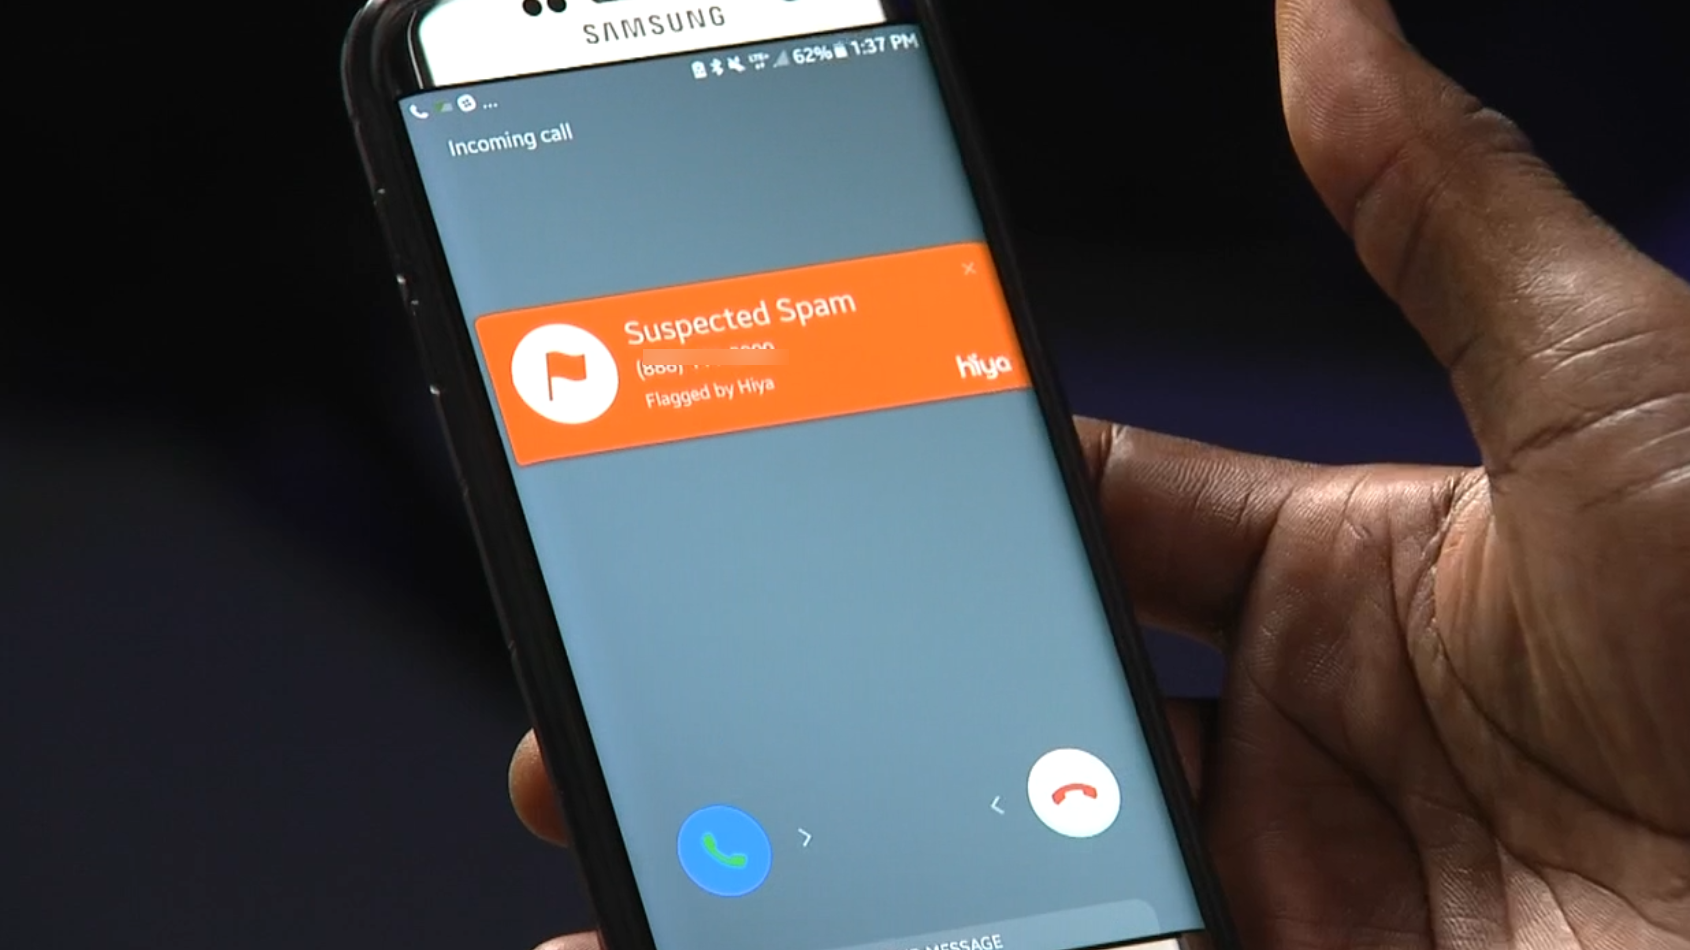 CA Residents Received 490M Robocalls in September: Report